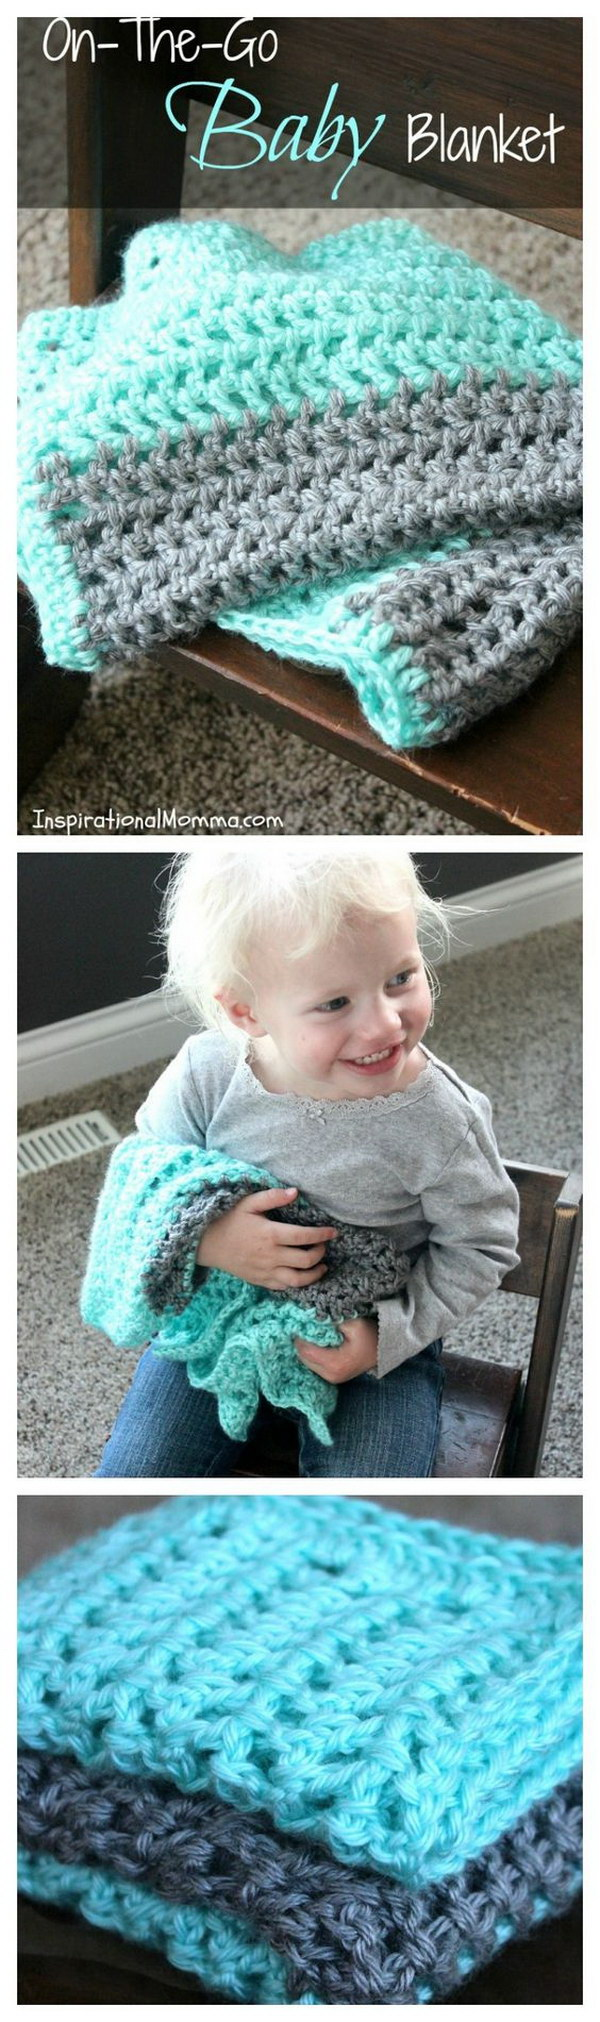 On-The-Go Crochet Baby Blanket.